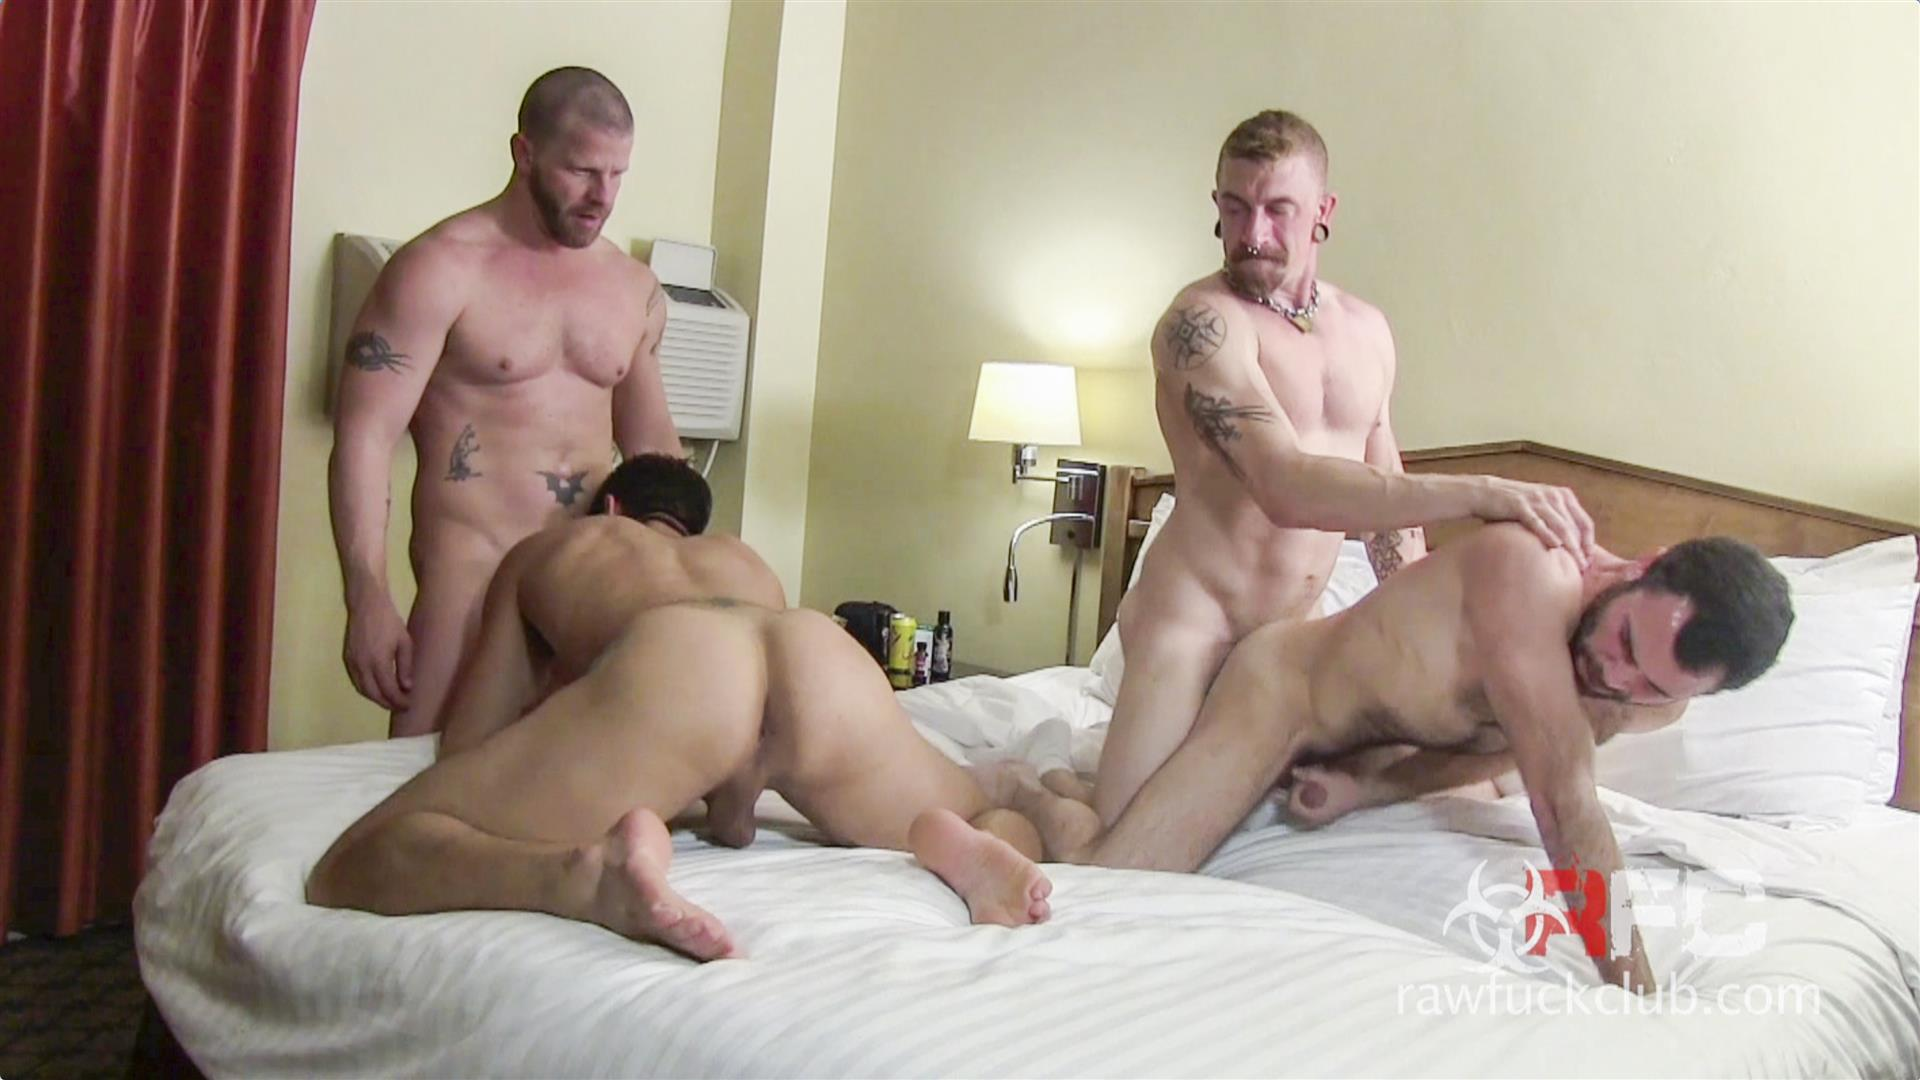 Raw-Fuck-Club-Dylan-Saunders-and-Dusty-Williams-and-Jeff-Kendall-and-Jeremy-Stevens-BBBH-Amateur-Gay-Porn-01 Big Cock Amateur Hotel Bareback Sex Party